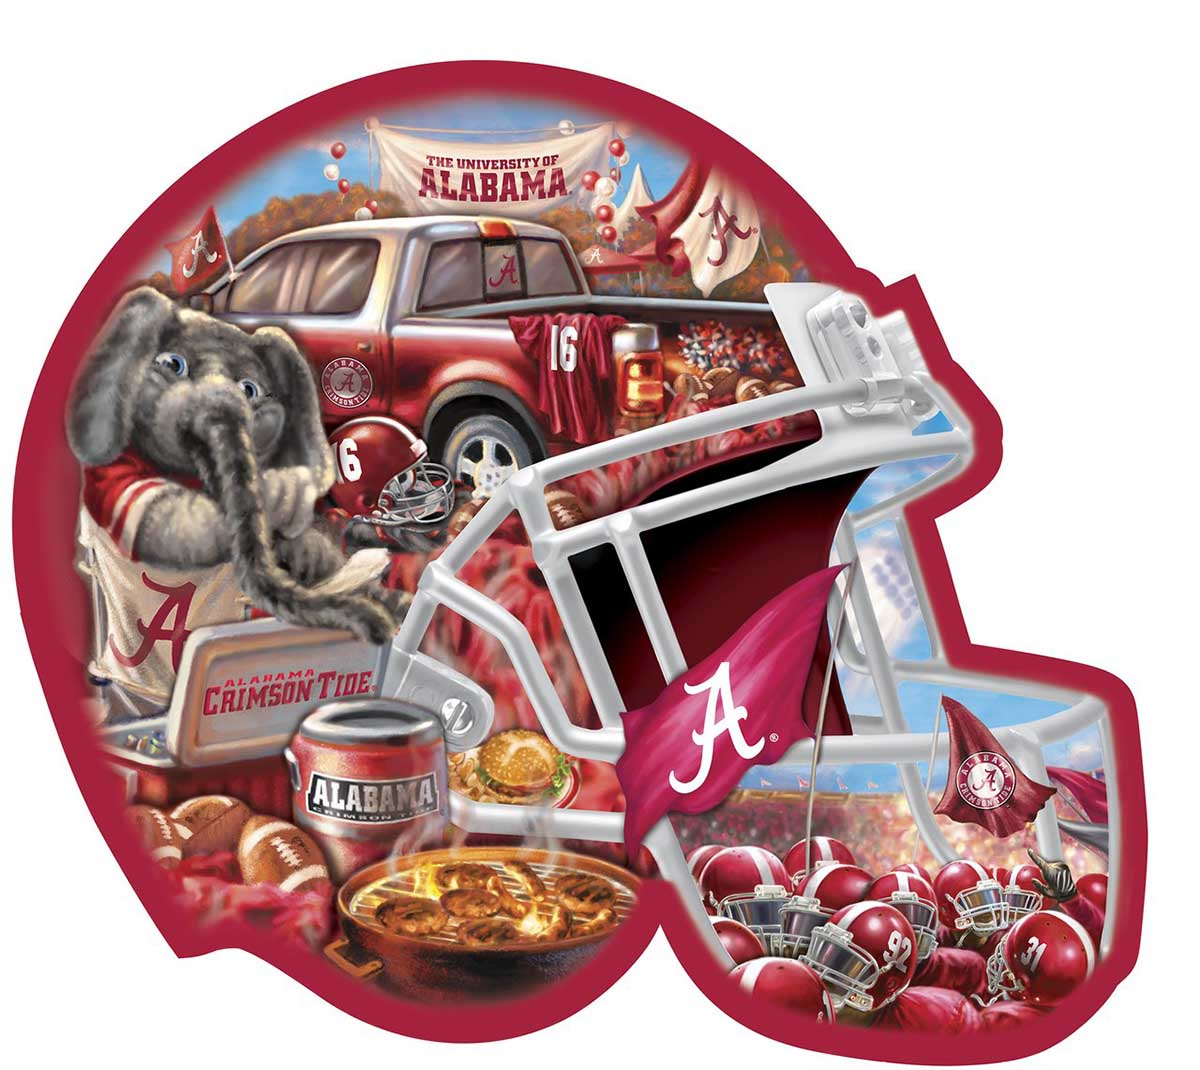 Alabama Helmet Shaped Puzzle - Scratch and Dent Sports Shaped Puzzle